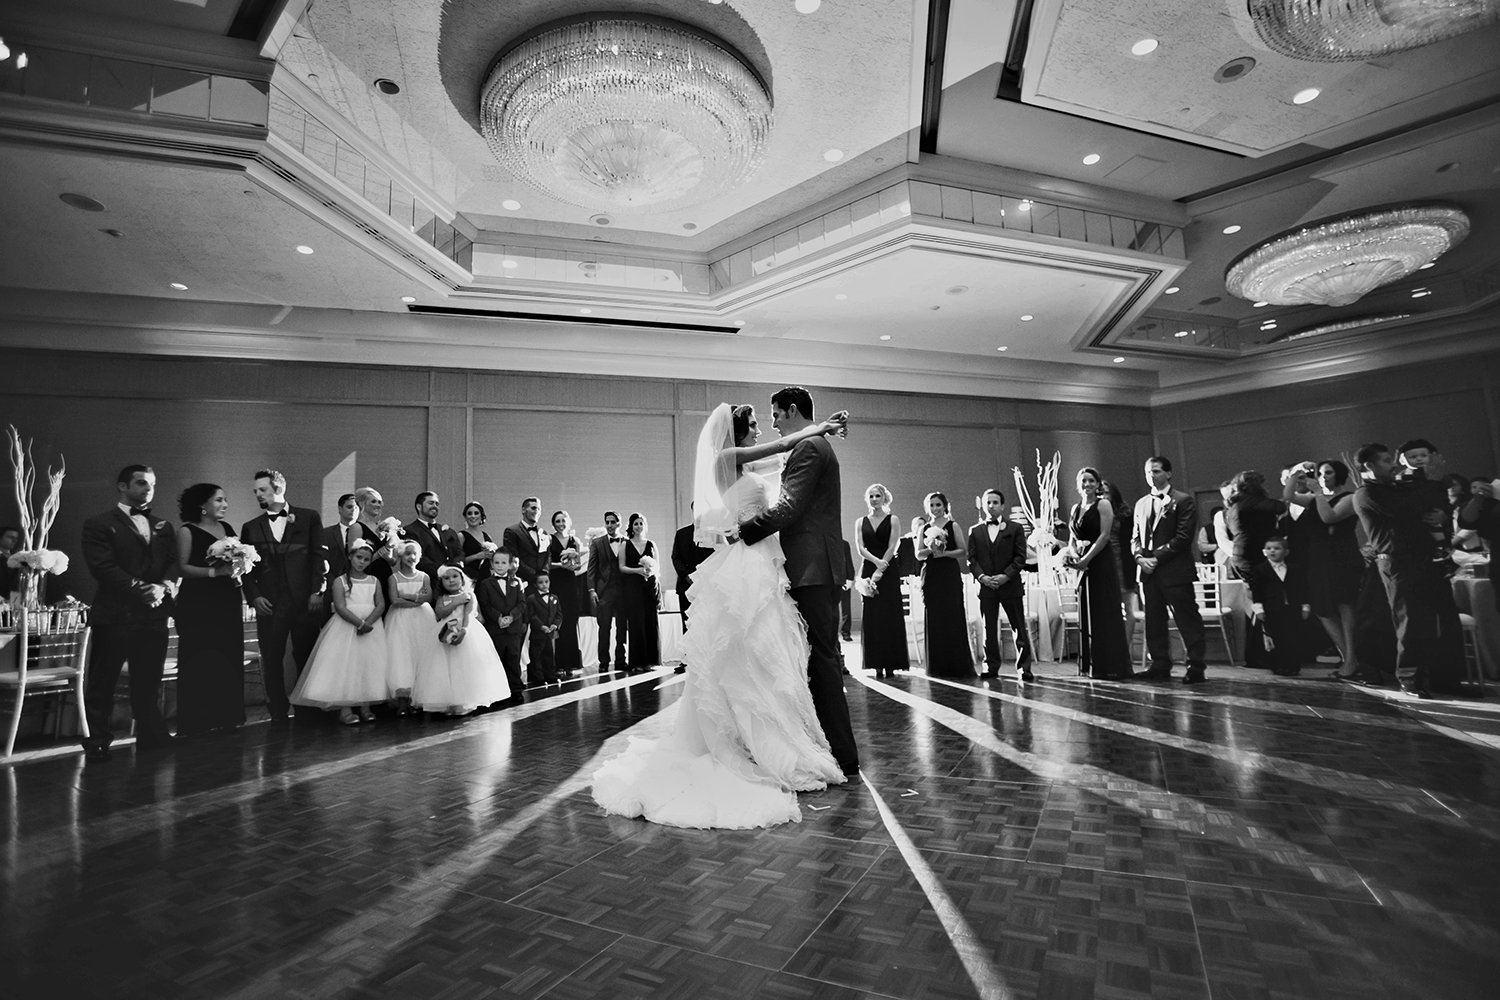 wedding photos romantic  first dance bride and groom